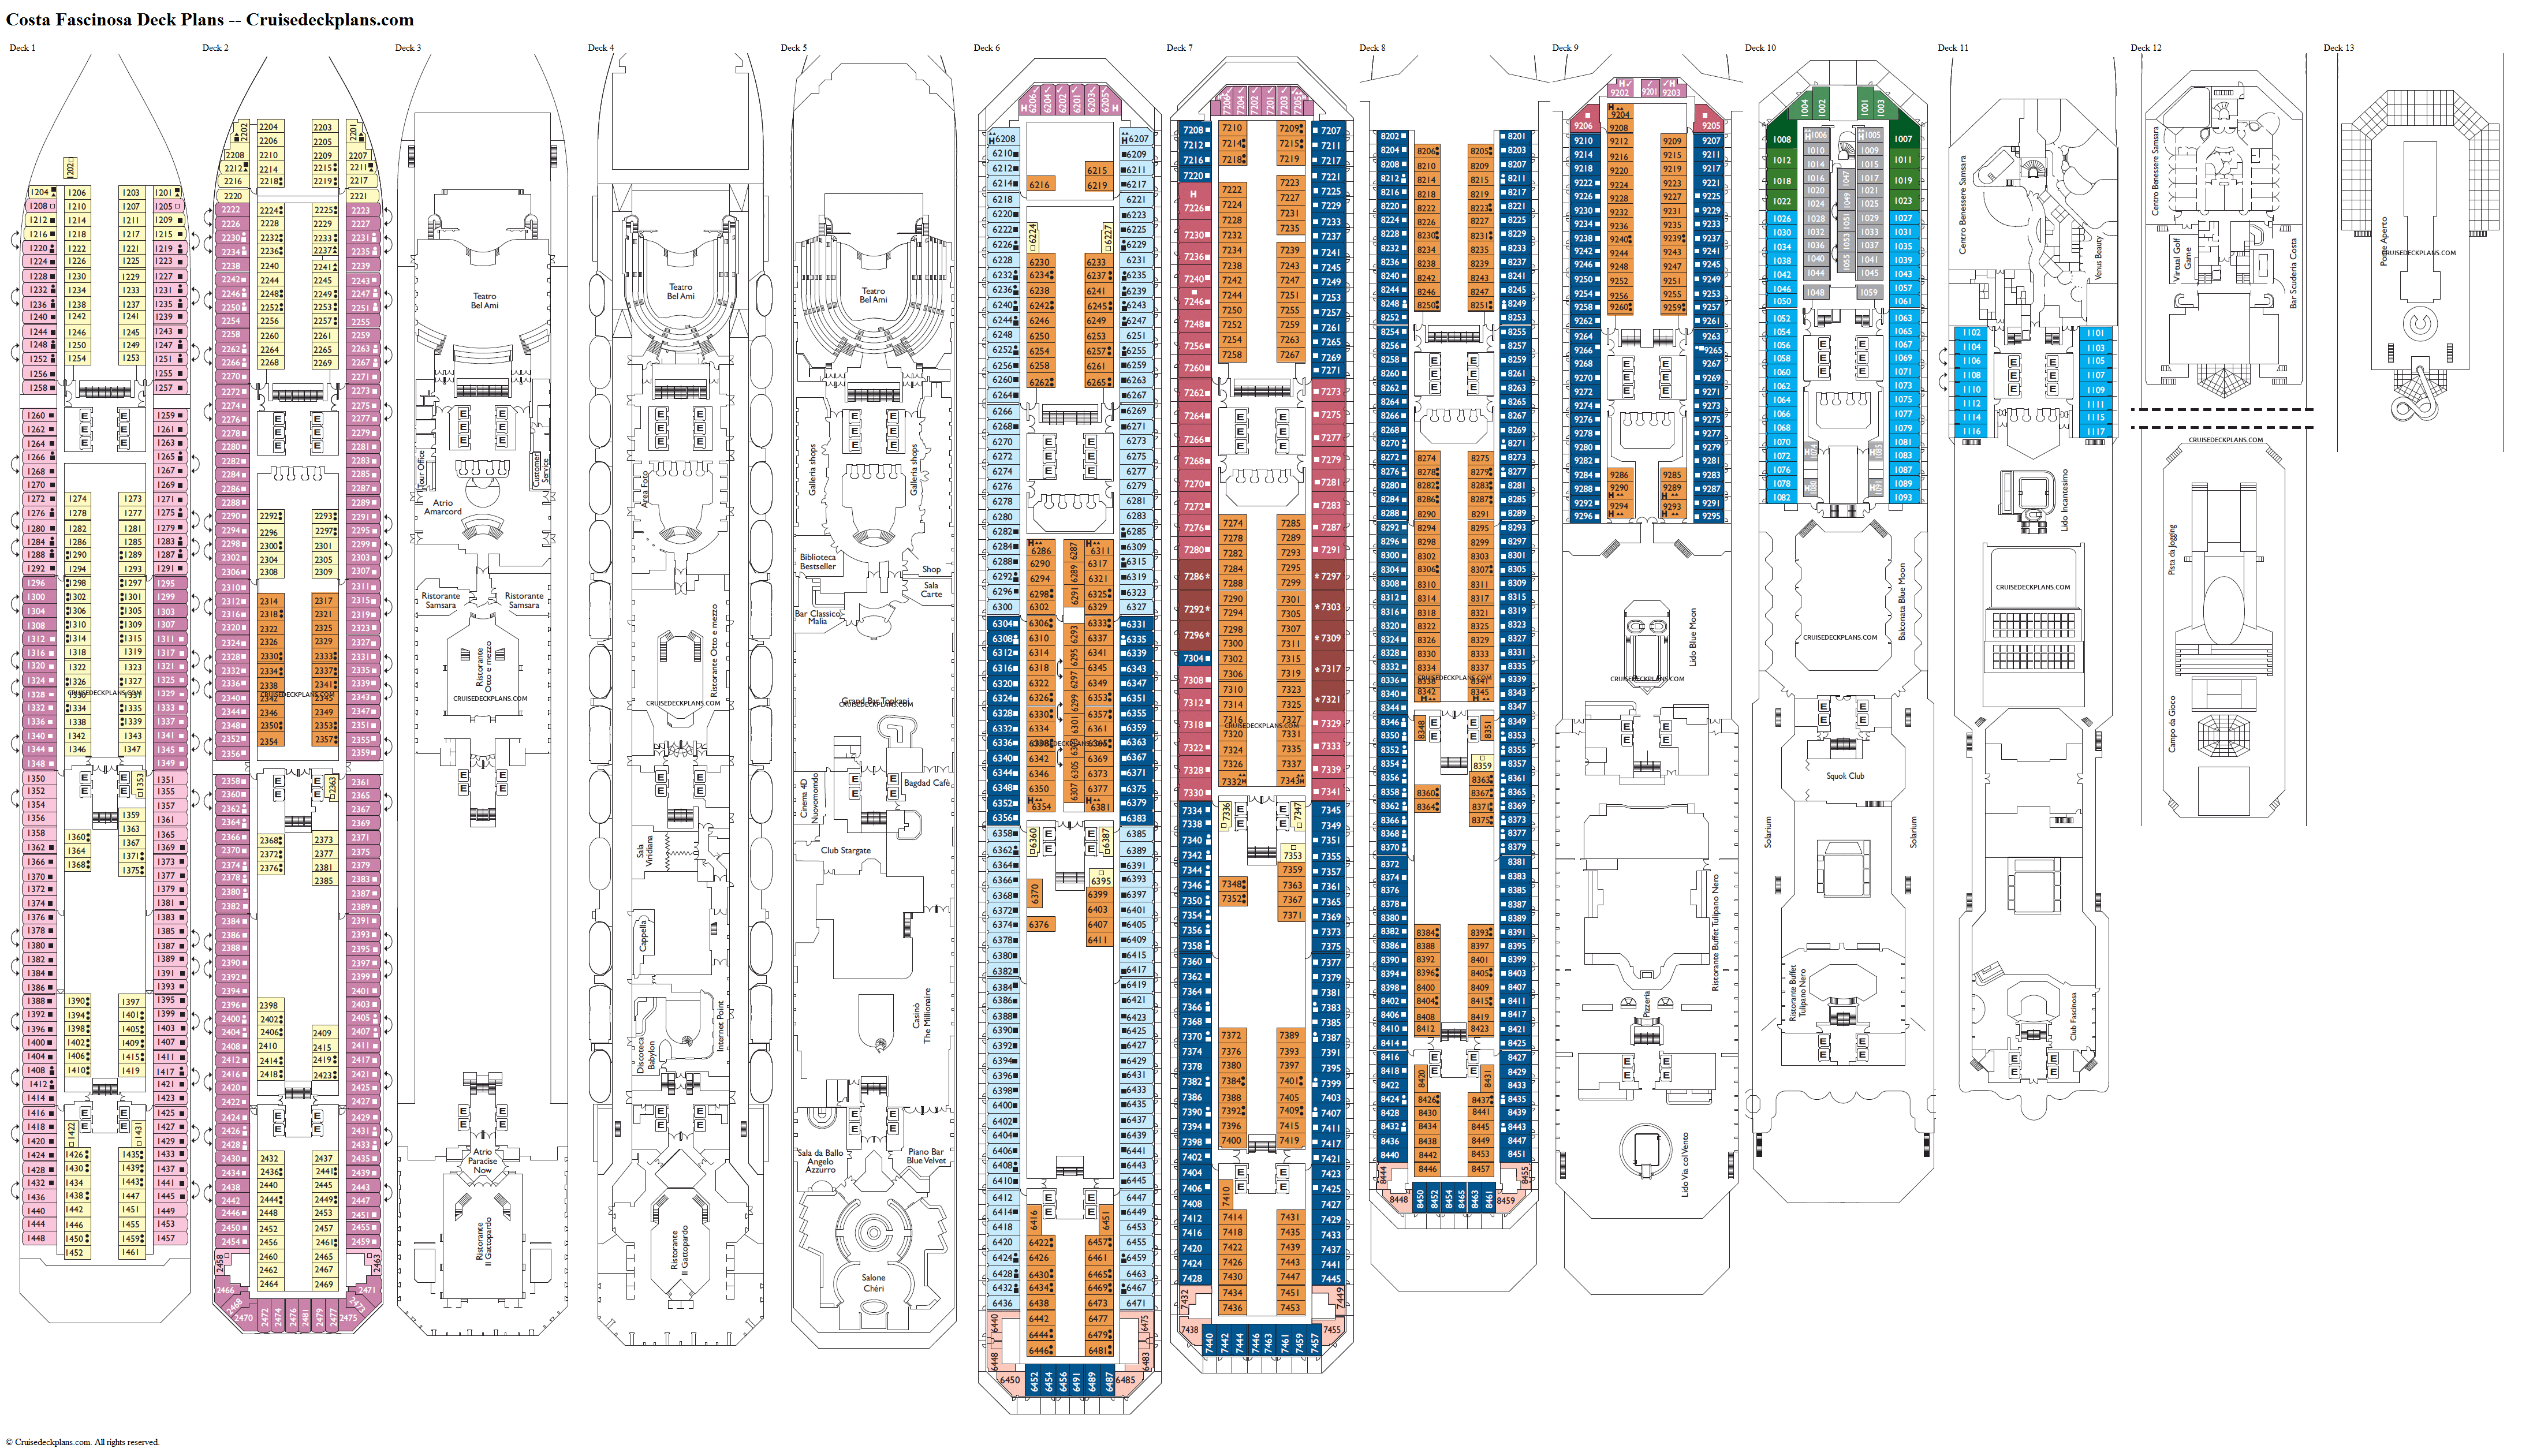 Costa Fascinosa deck plans image